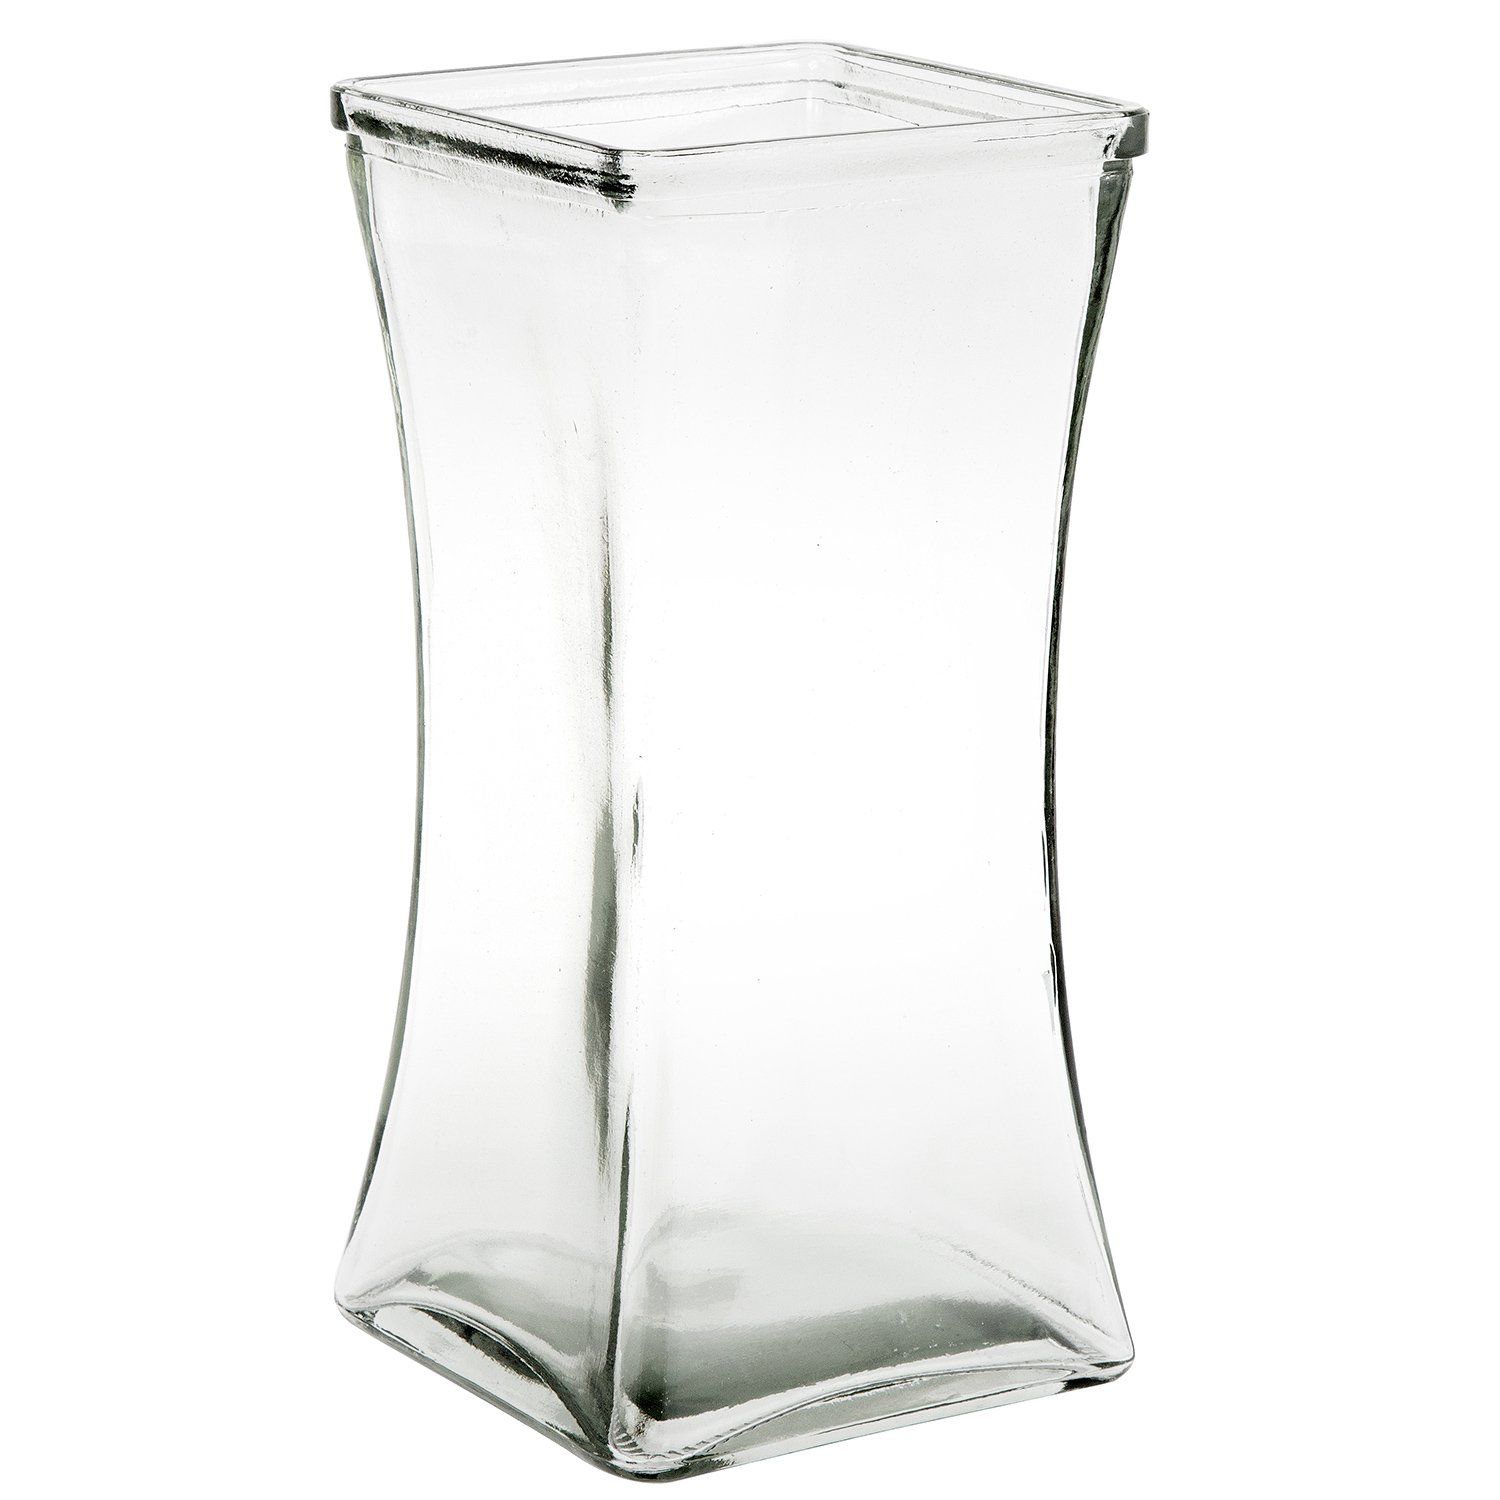 Flower Rose Bunch Glass Gathering Vase Decorative Centerpiece For Home or Wedding (Fits Dozen Roses) - Square - 8.75'' Tall, 4.5'' Opening, Clear